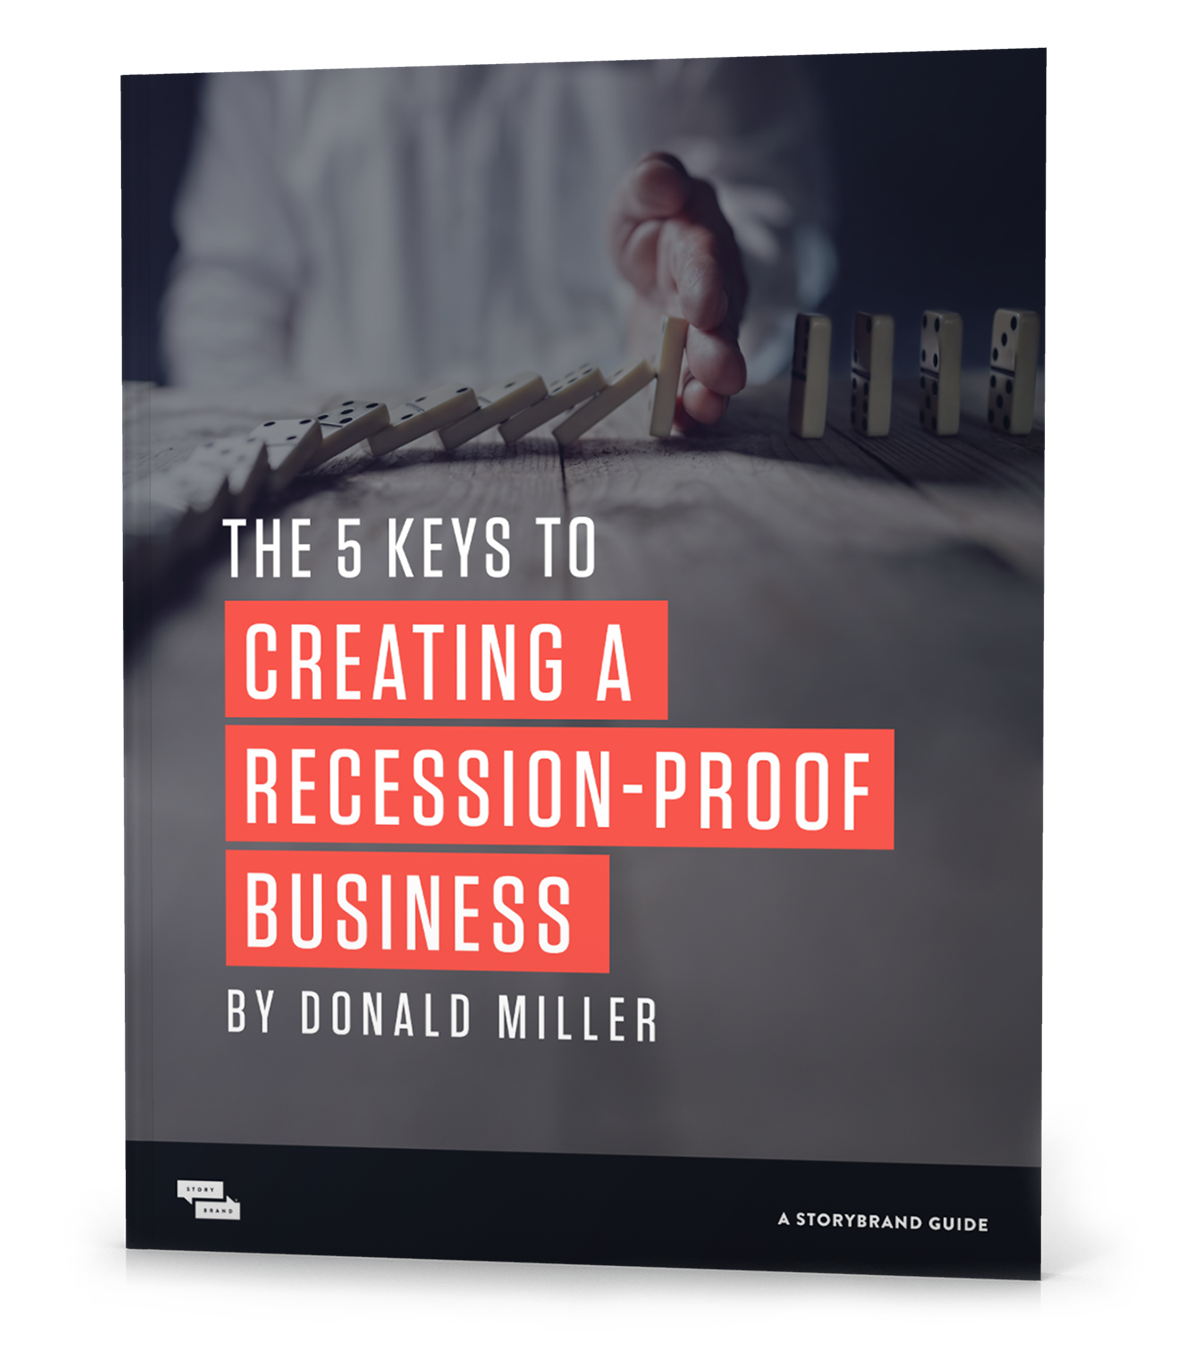 The 5 Keys to Creating a Recession-proof Business